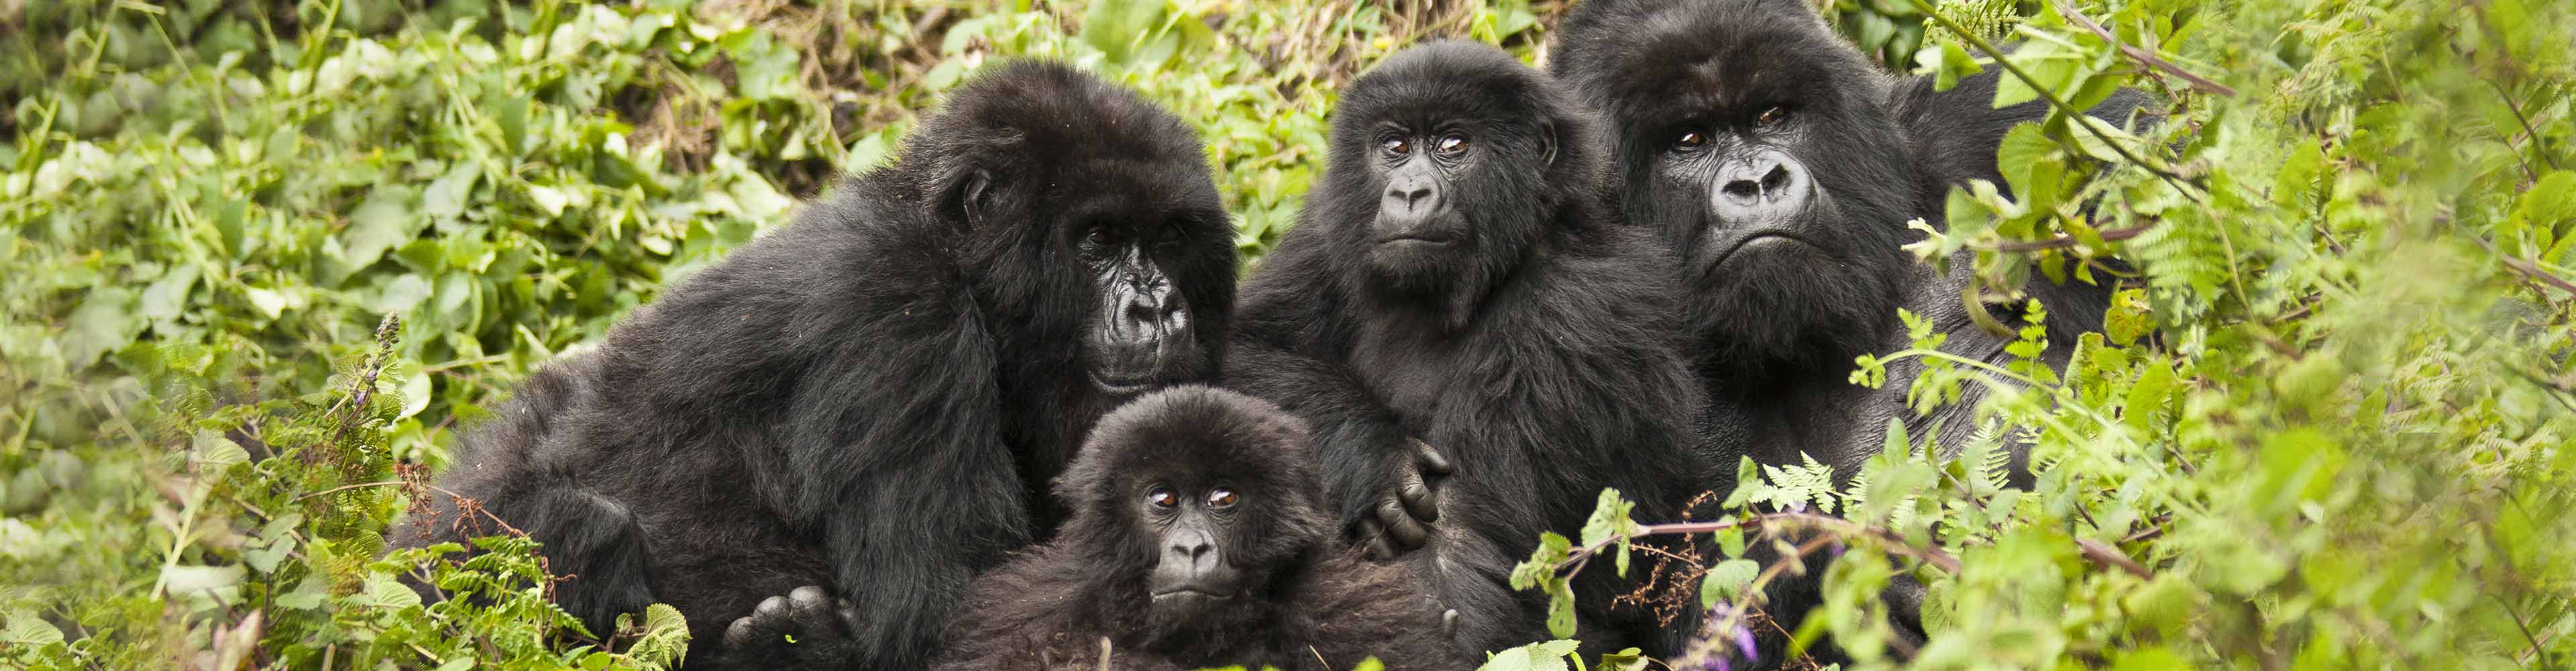 Uganda Gorilla Expedition & Safari – Limited Edition